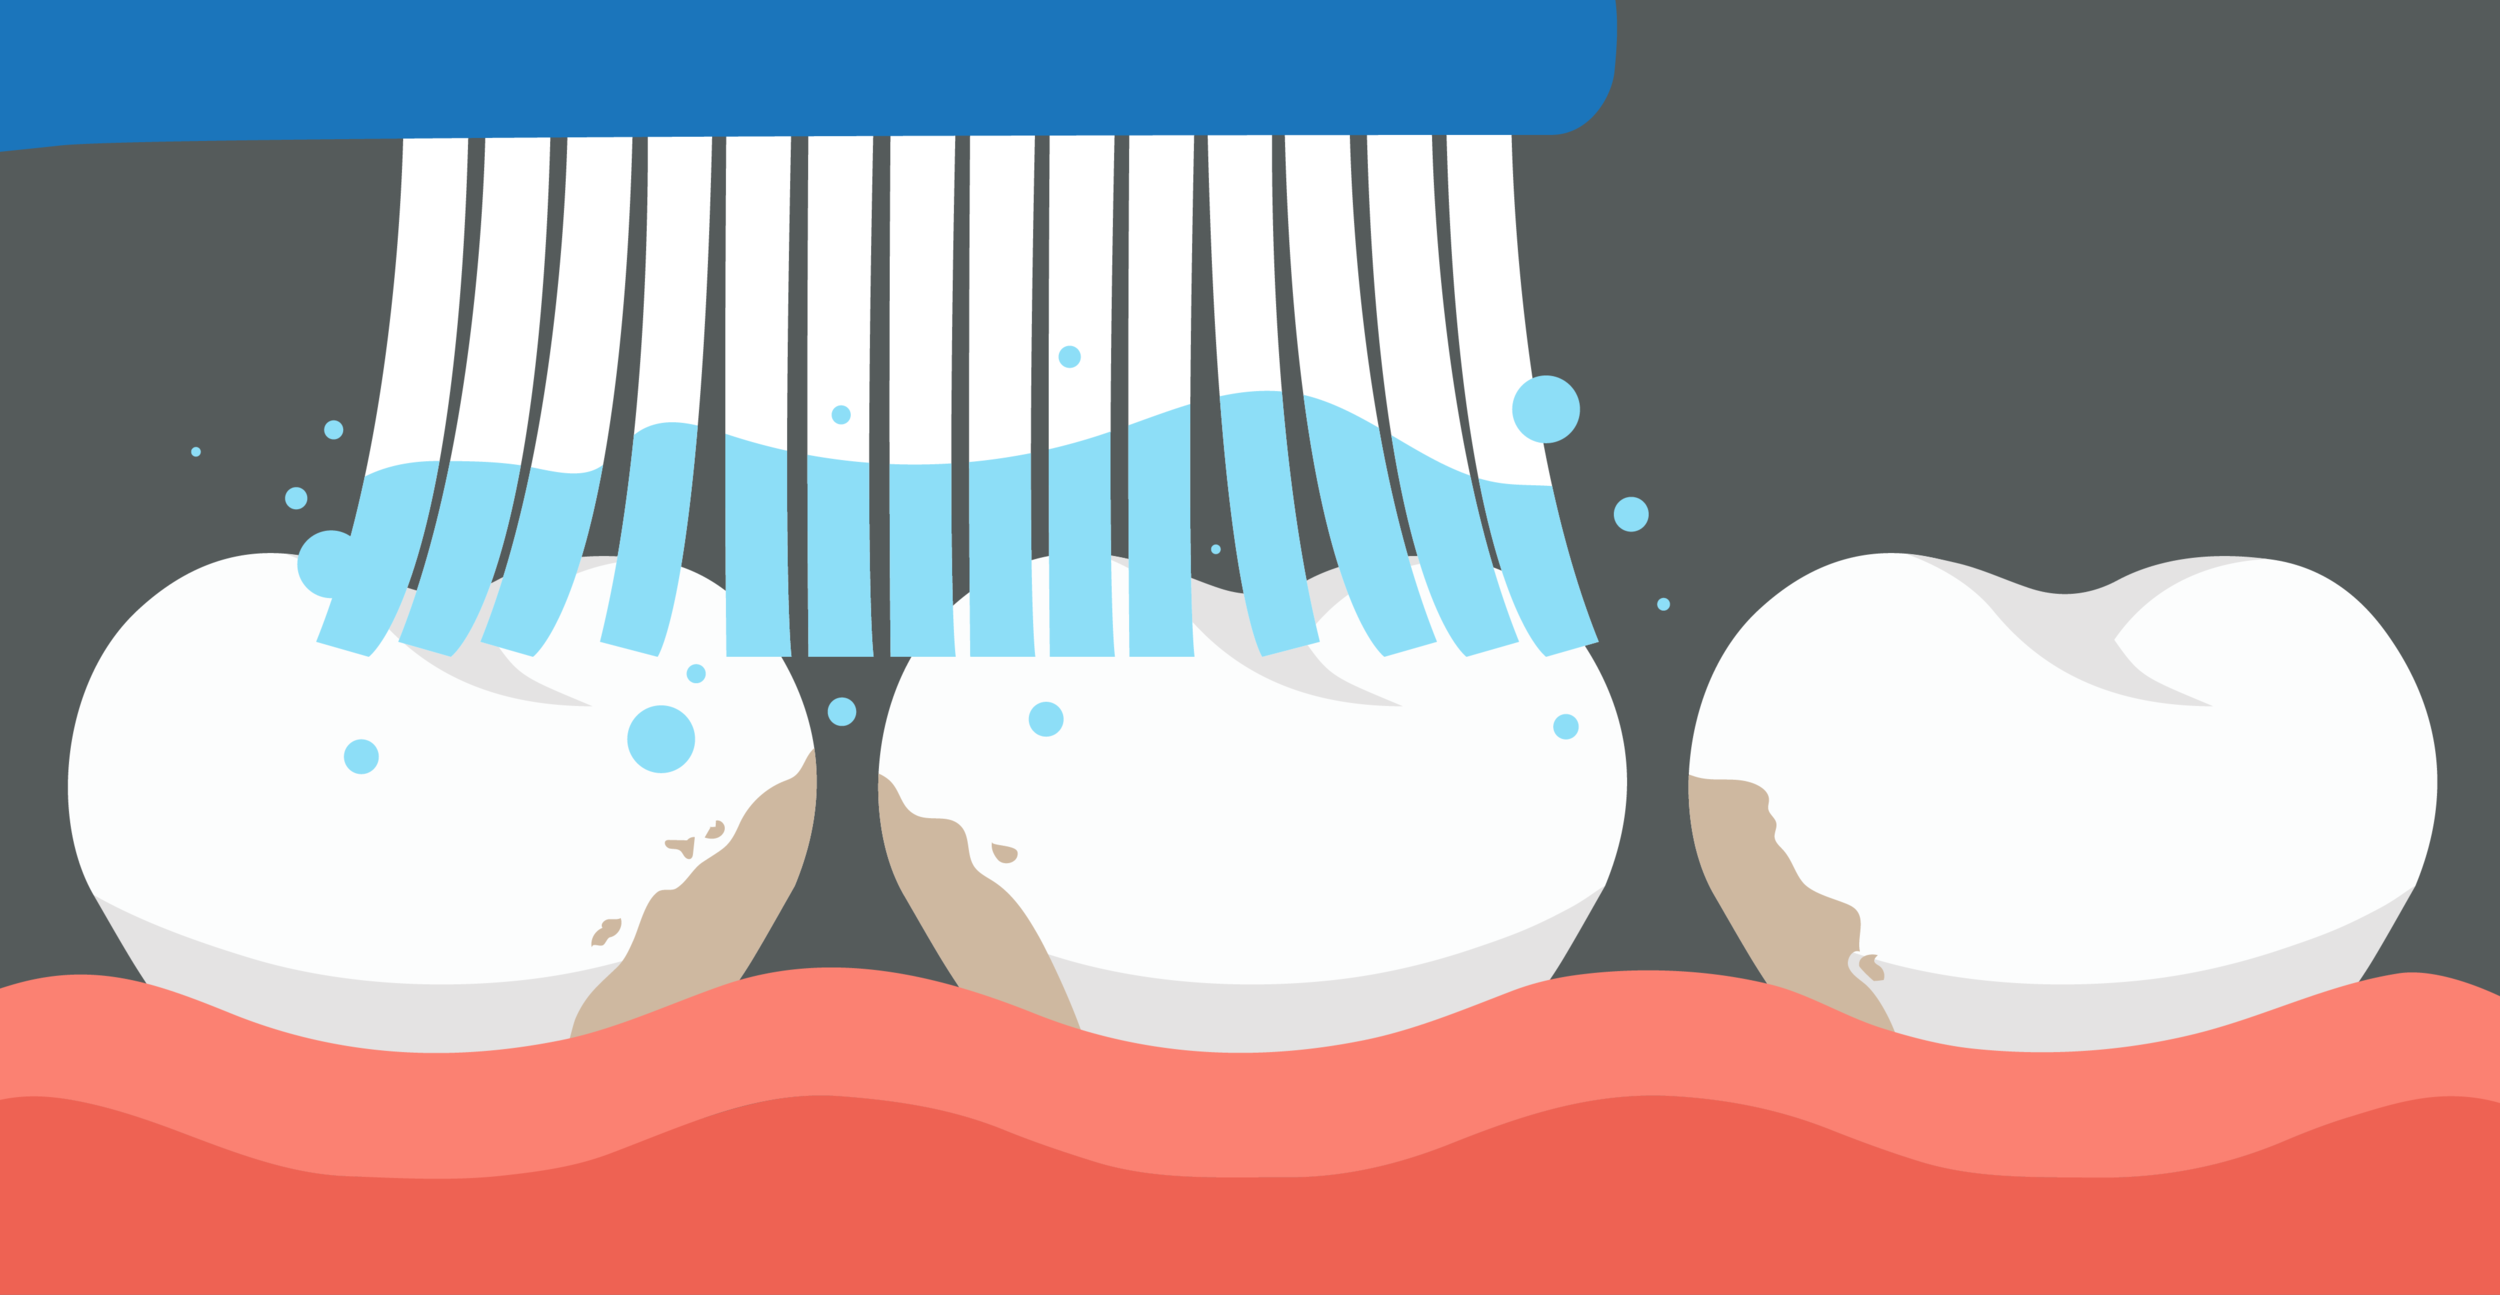 Brushing is part of our daily lives. We do so in the morning and at night. Flossing though? Not so much. It's either painful to the fingers or hard to reach the back teeth.